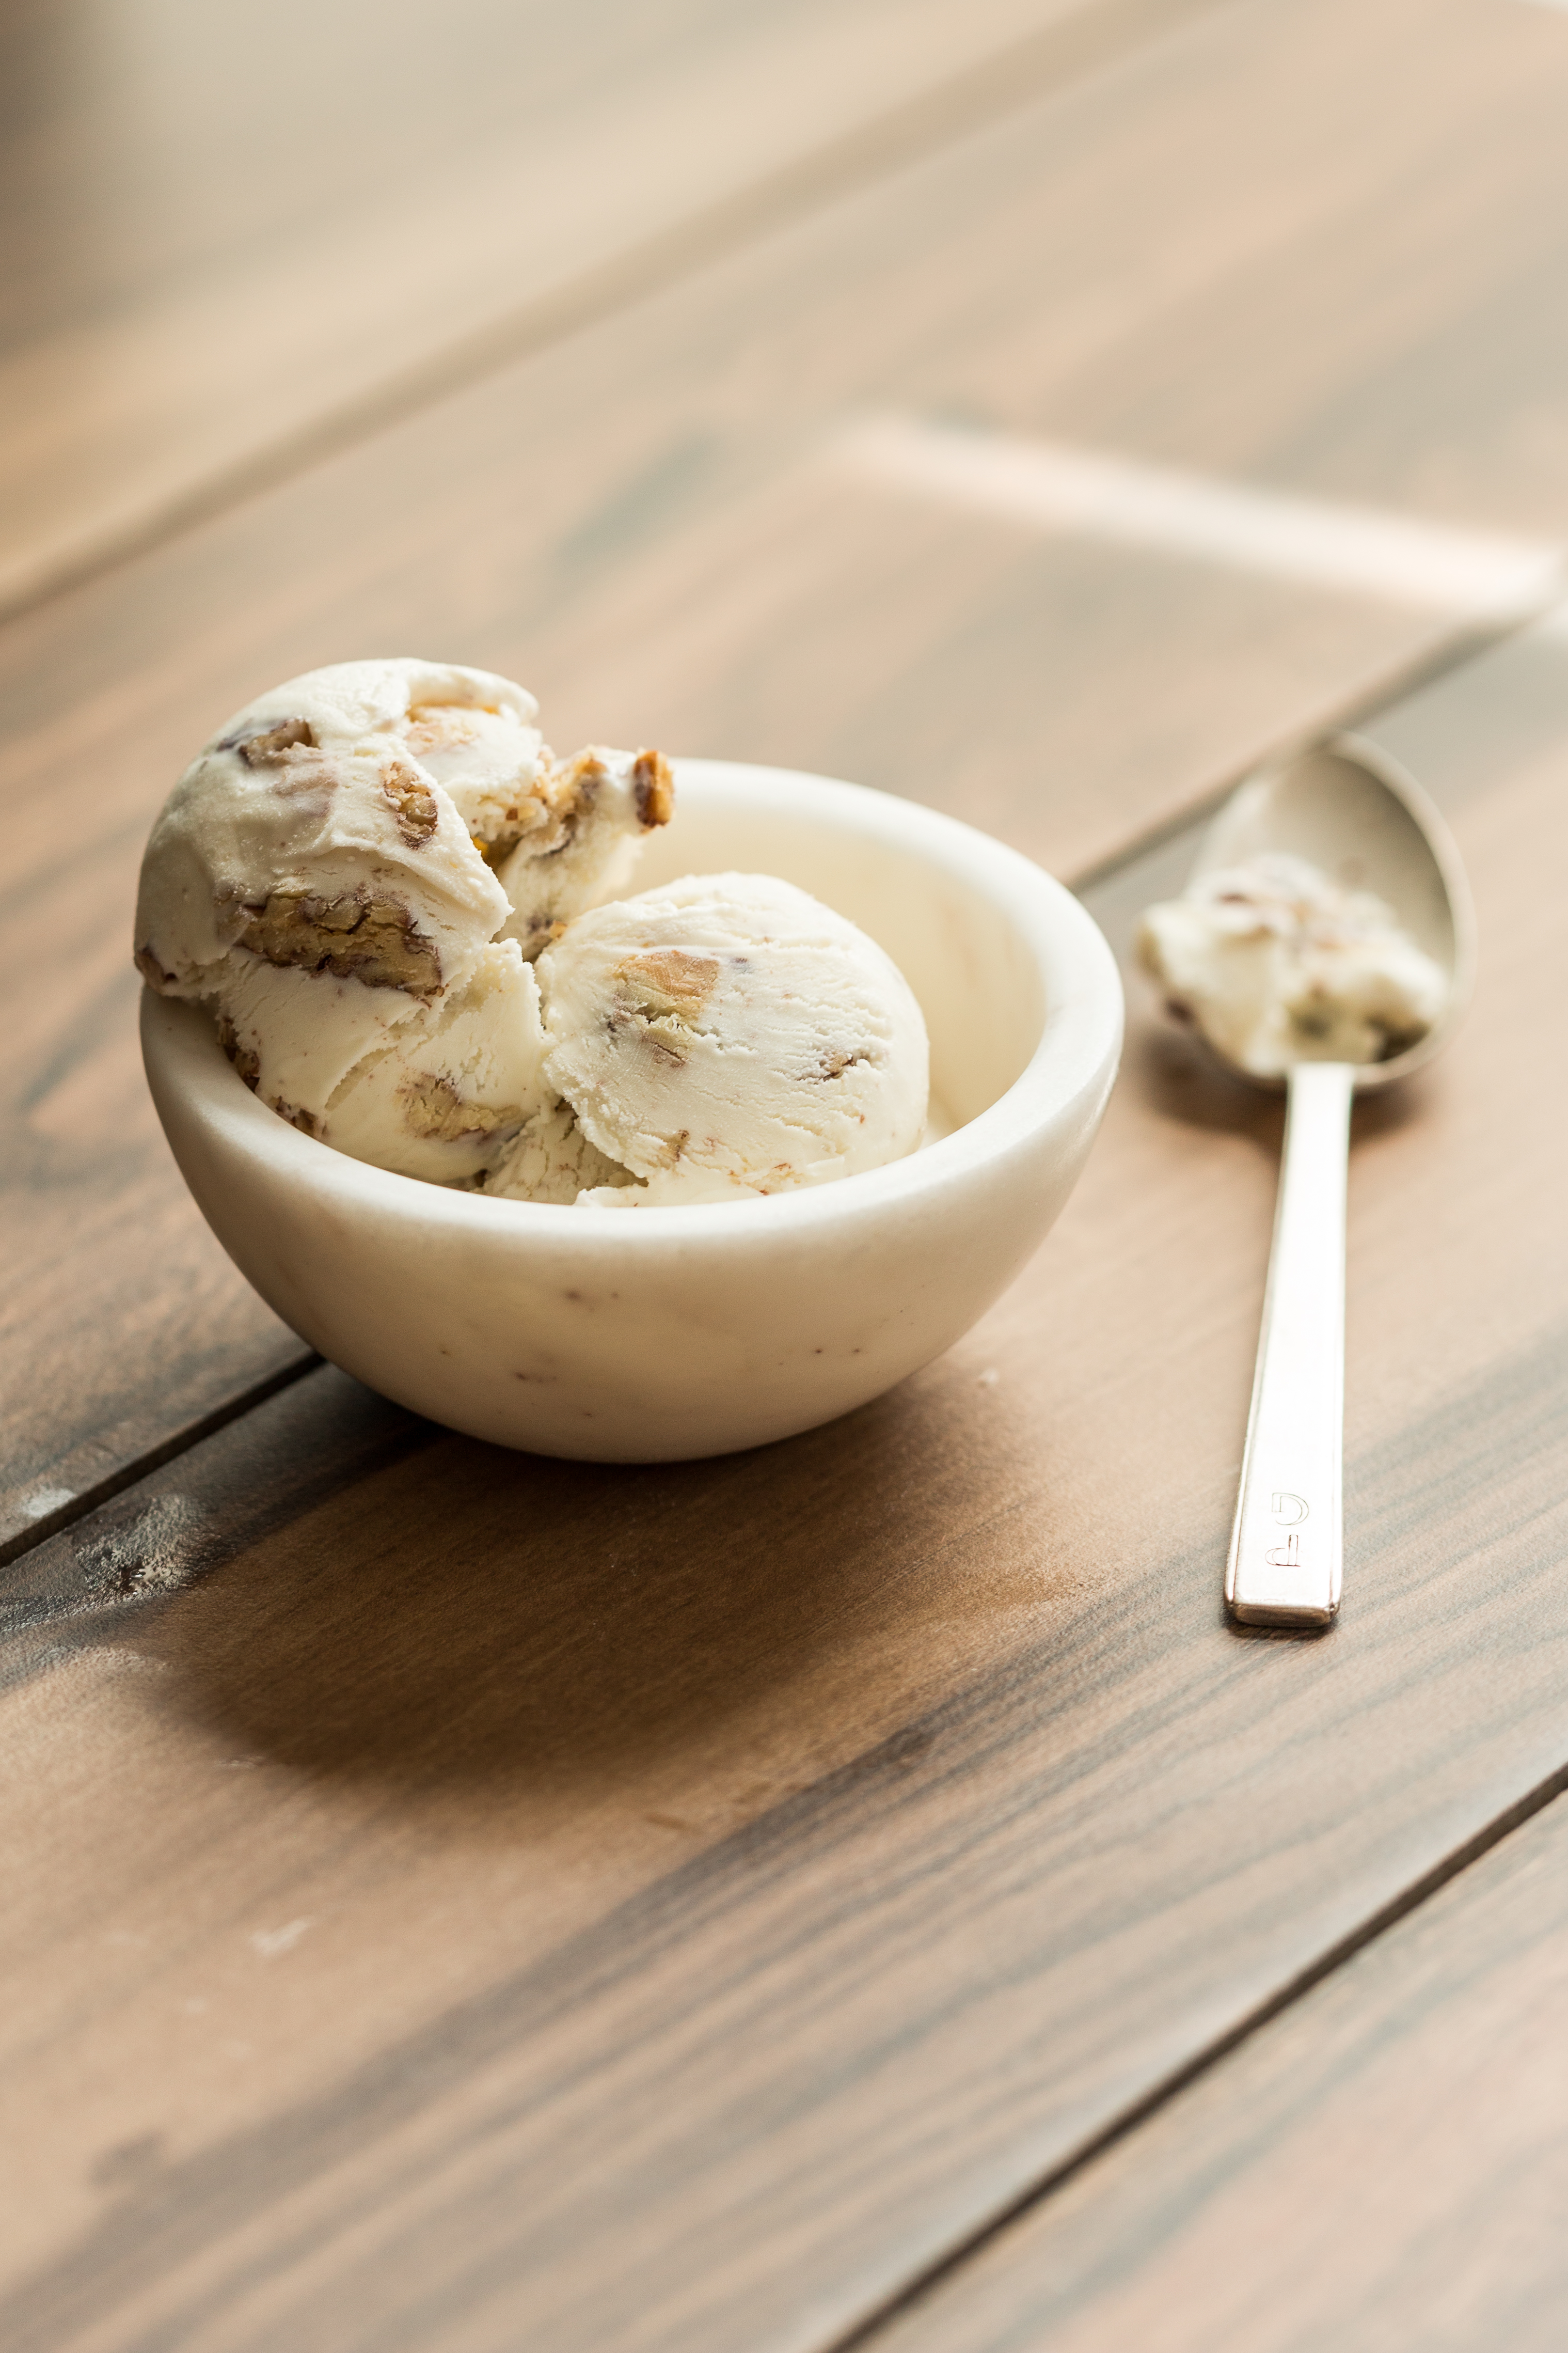 Jeni Britton Bauer, the James Beard Award-winning cookbook author, has opened her first ever east coast location of Jeni's Splendid Ice Creams right here in D.C.! To celebrate the grand opening, Jeni is inviting the community in for free scoops from 7 p.m. to 11 p.m. on Thursday, October 5. (Image: Courtesy Jeni's Splendid Ice Creams)